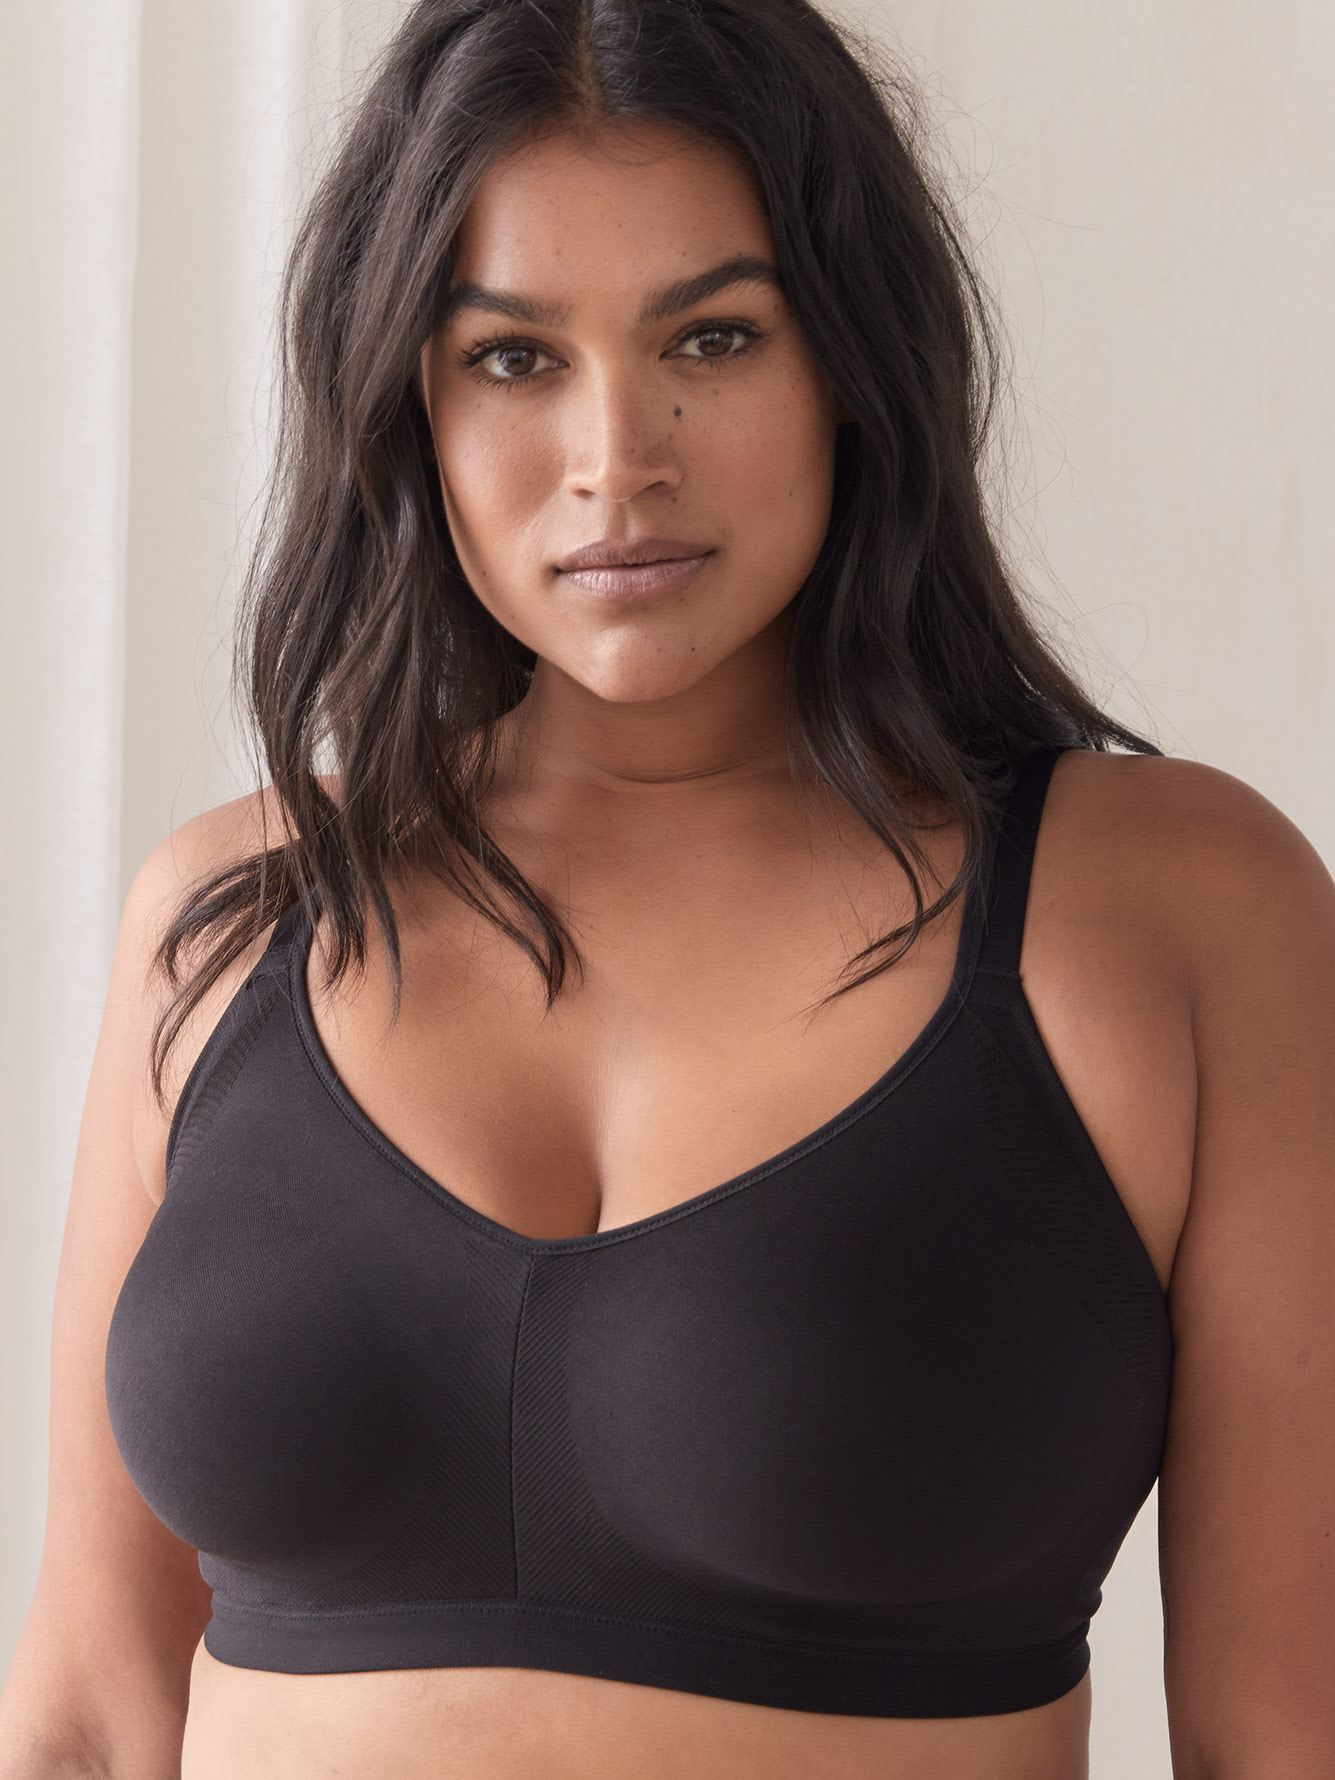 Easy Does It Wirefree Bra - Olga by Warner's